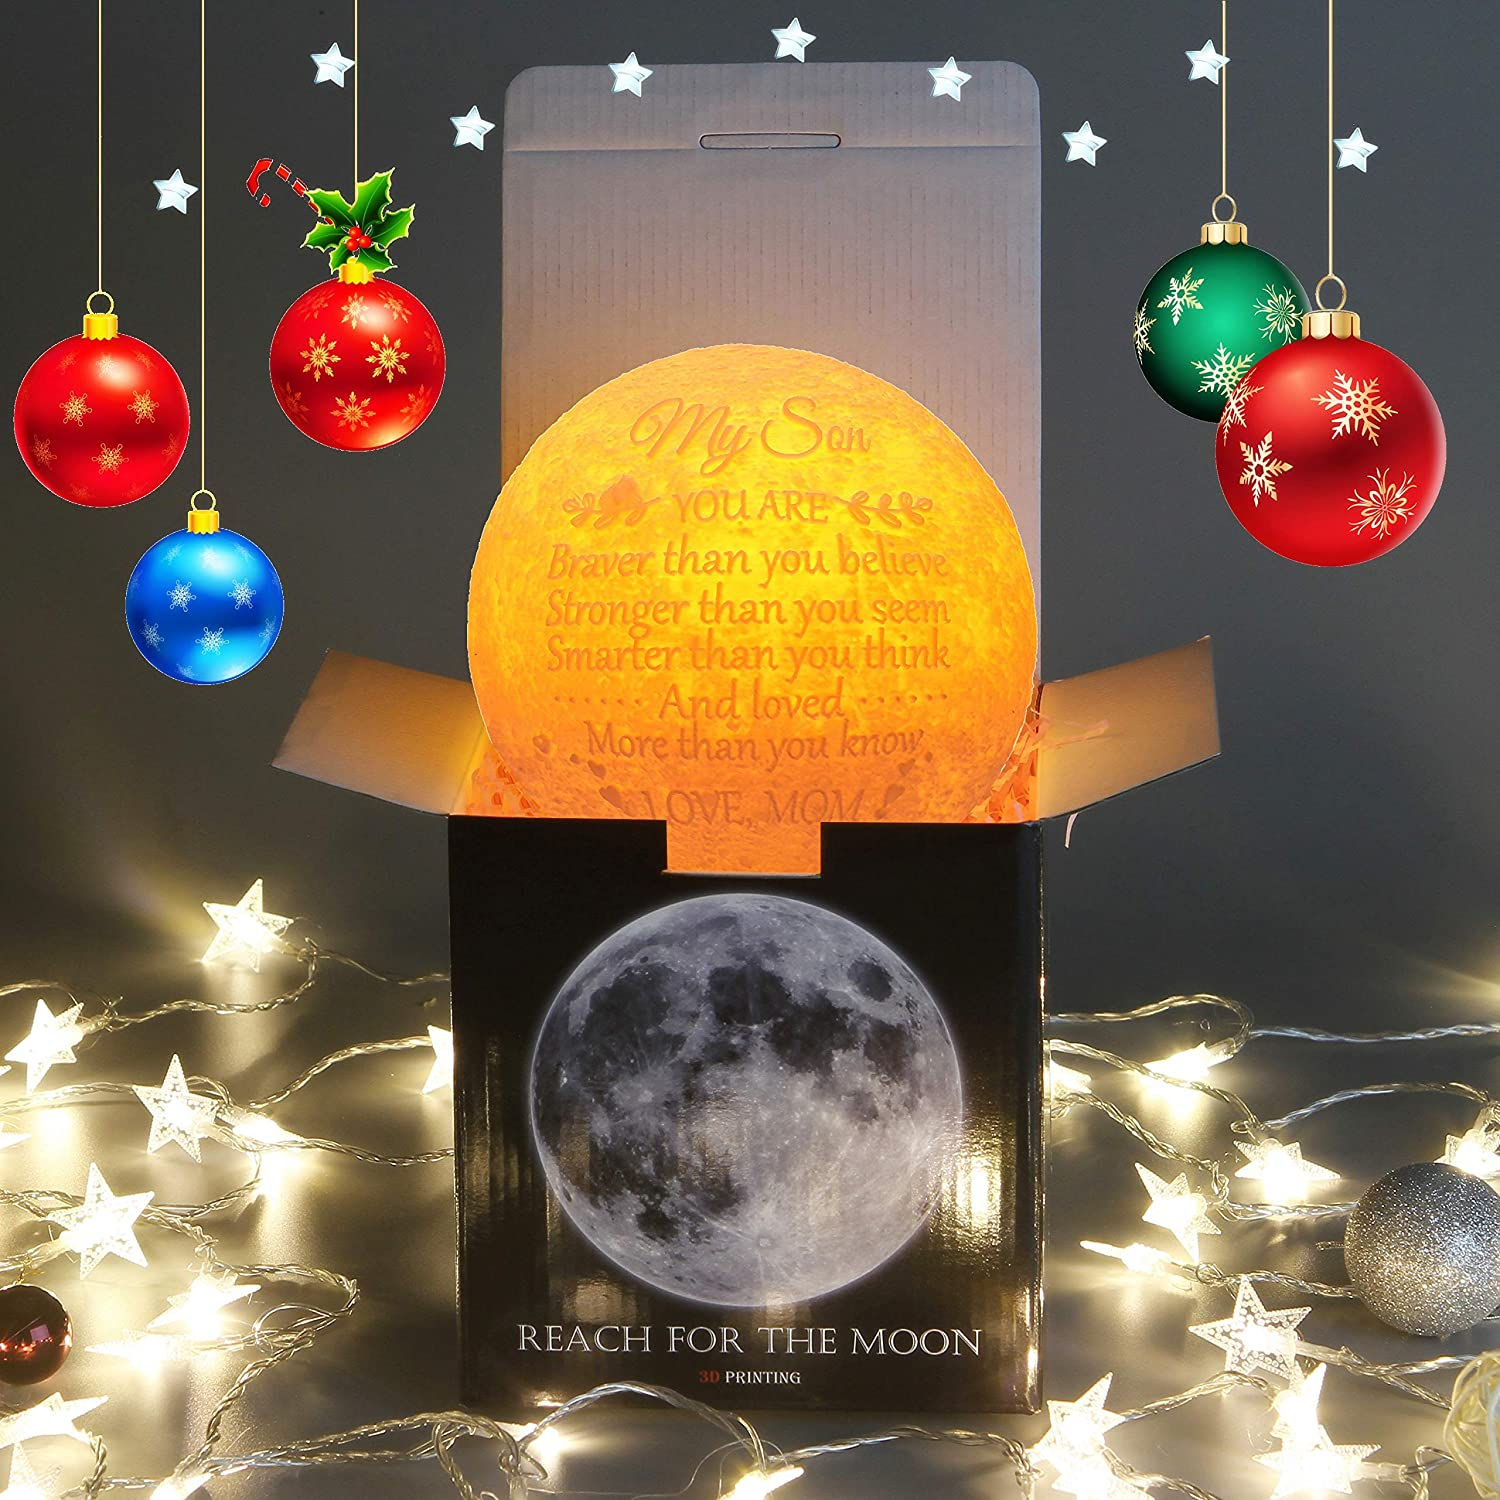 Personalized Gifts for Son Cool 3D Moon Lamp Large,Moon Led Light Gifts for Adult Son from Mom,Cute Desk Lamp for Bedroom Birthday Gifts for Men Son Kids